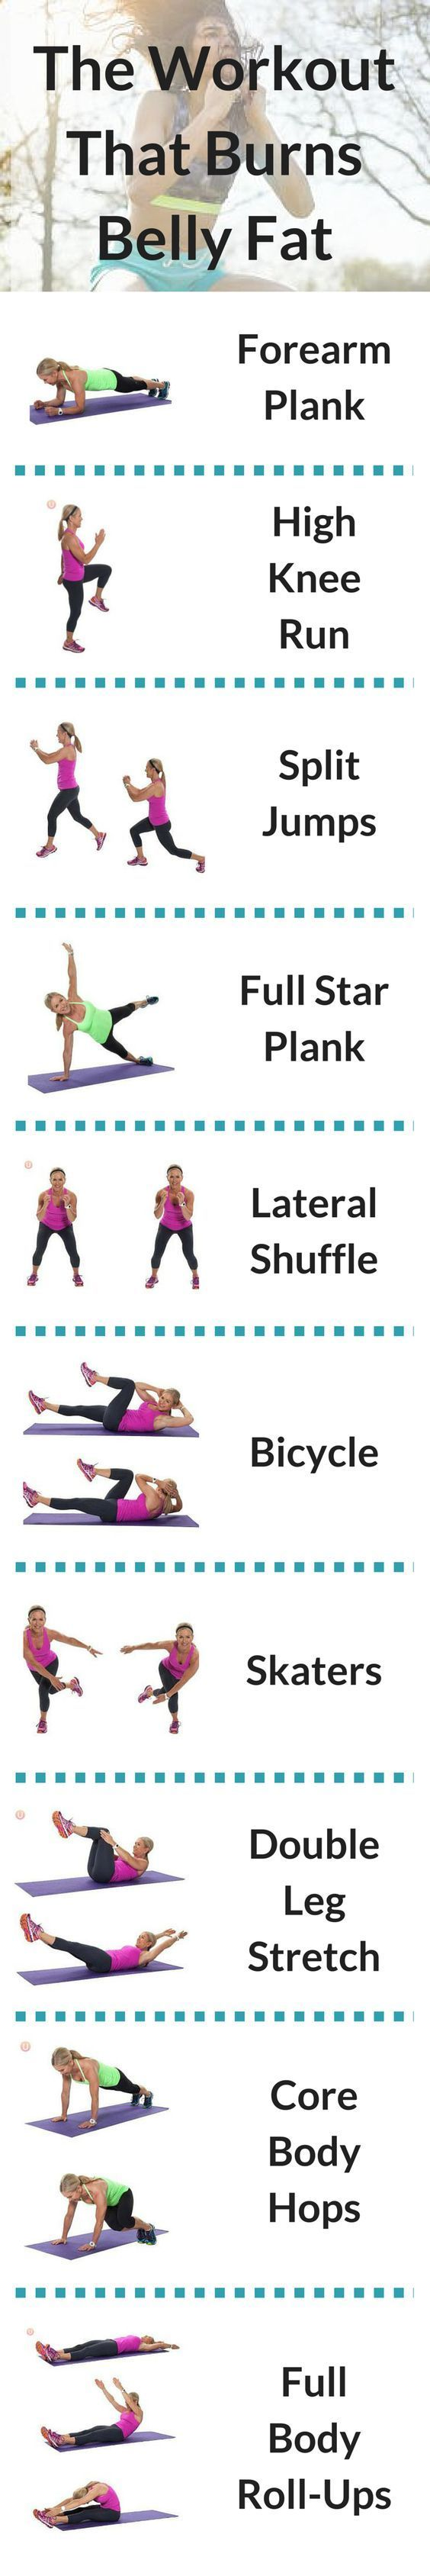 Get rid of belly fat for a healthier you! Try this workout plan to get fit and strong.